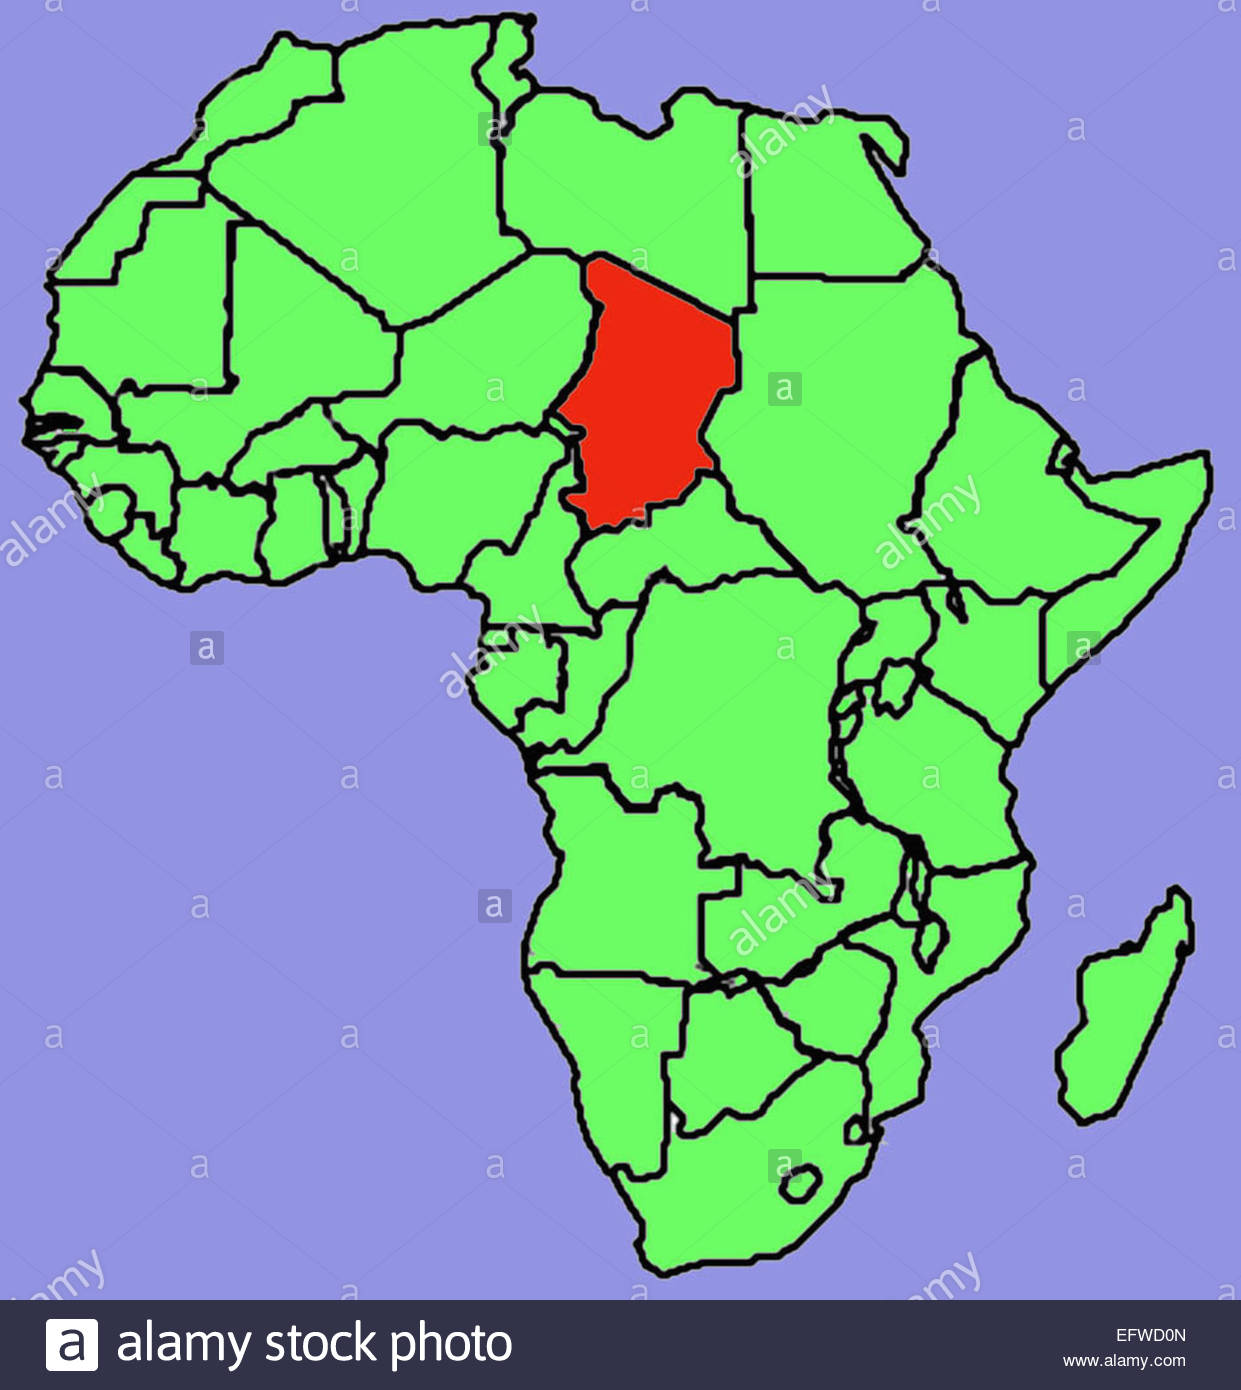 green map of african continent red area is chad republic of chad central africa republique du tchad chadians tcd 2000